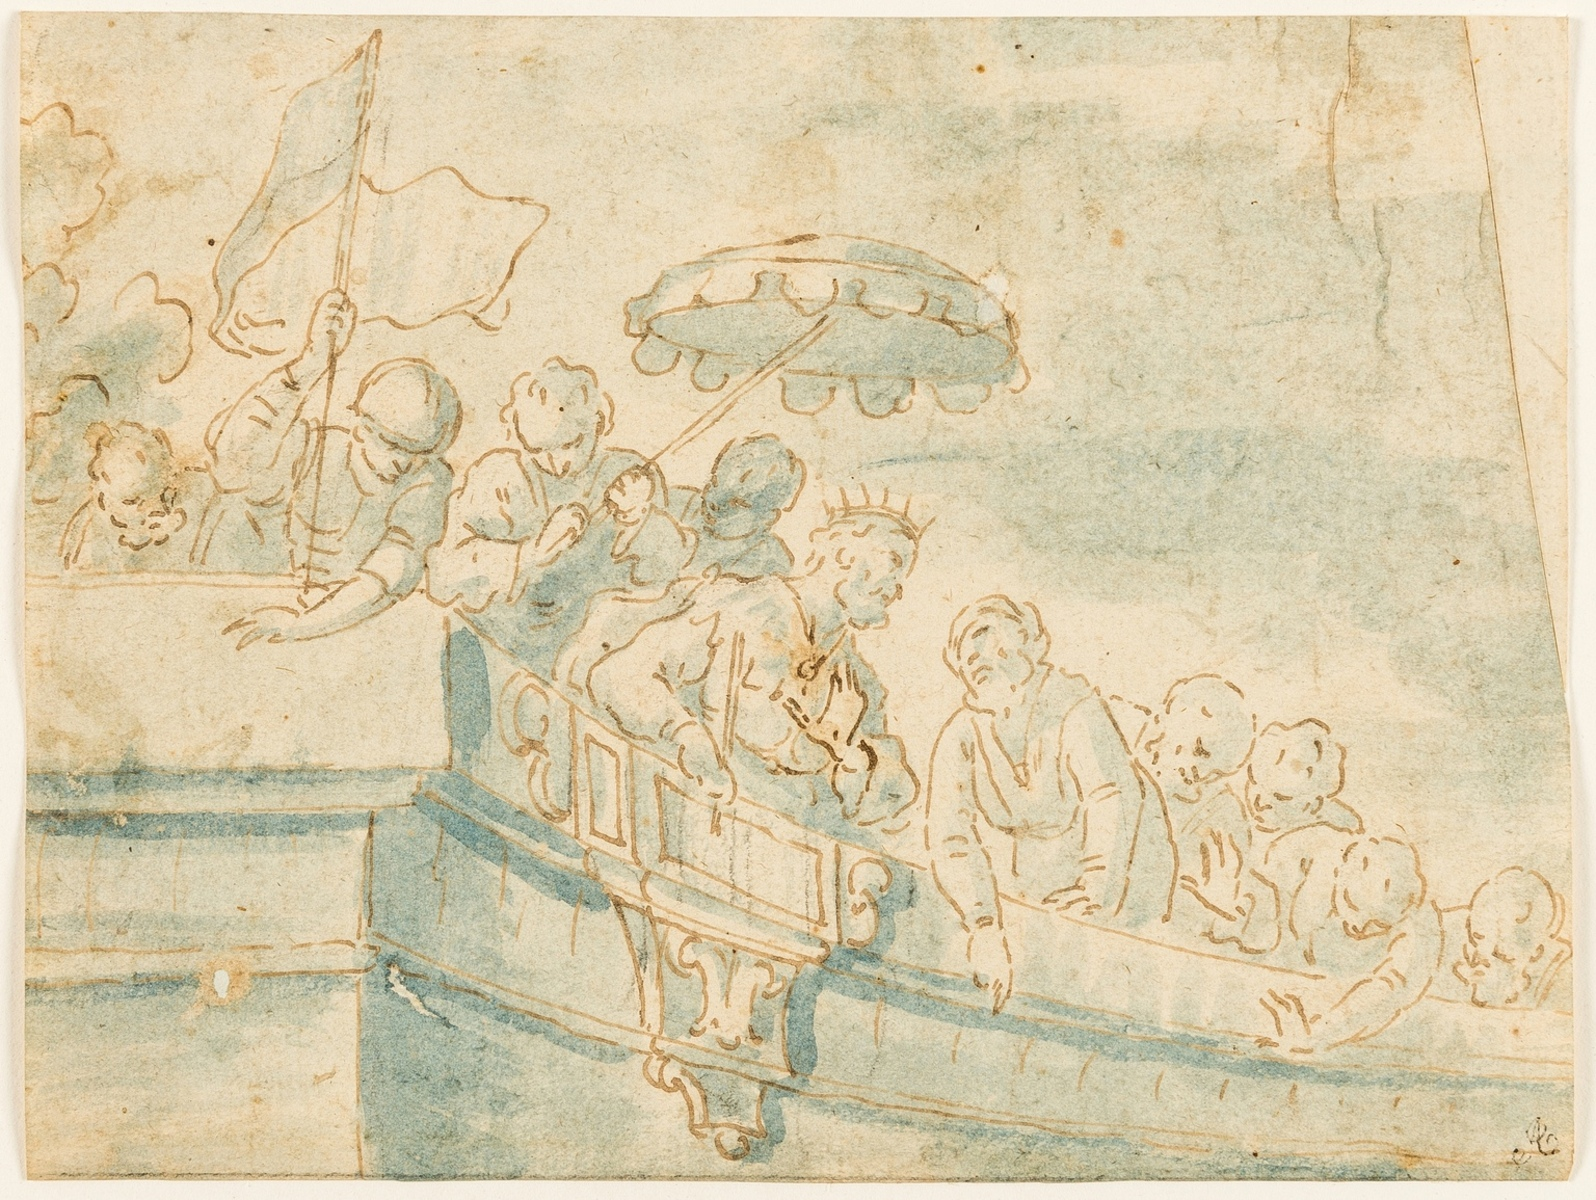 Venetian School (probably 16th century) A King and his attendants above a crowd